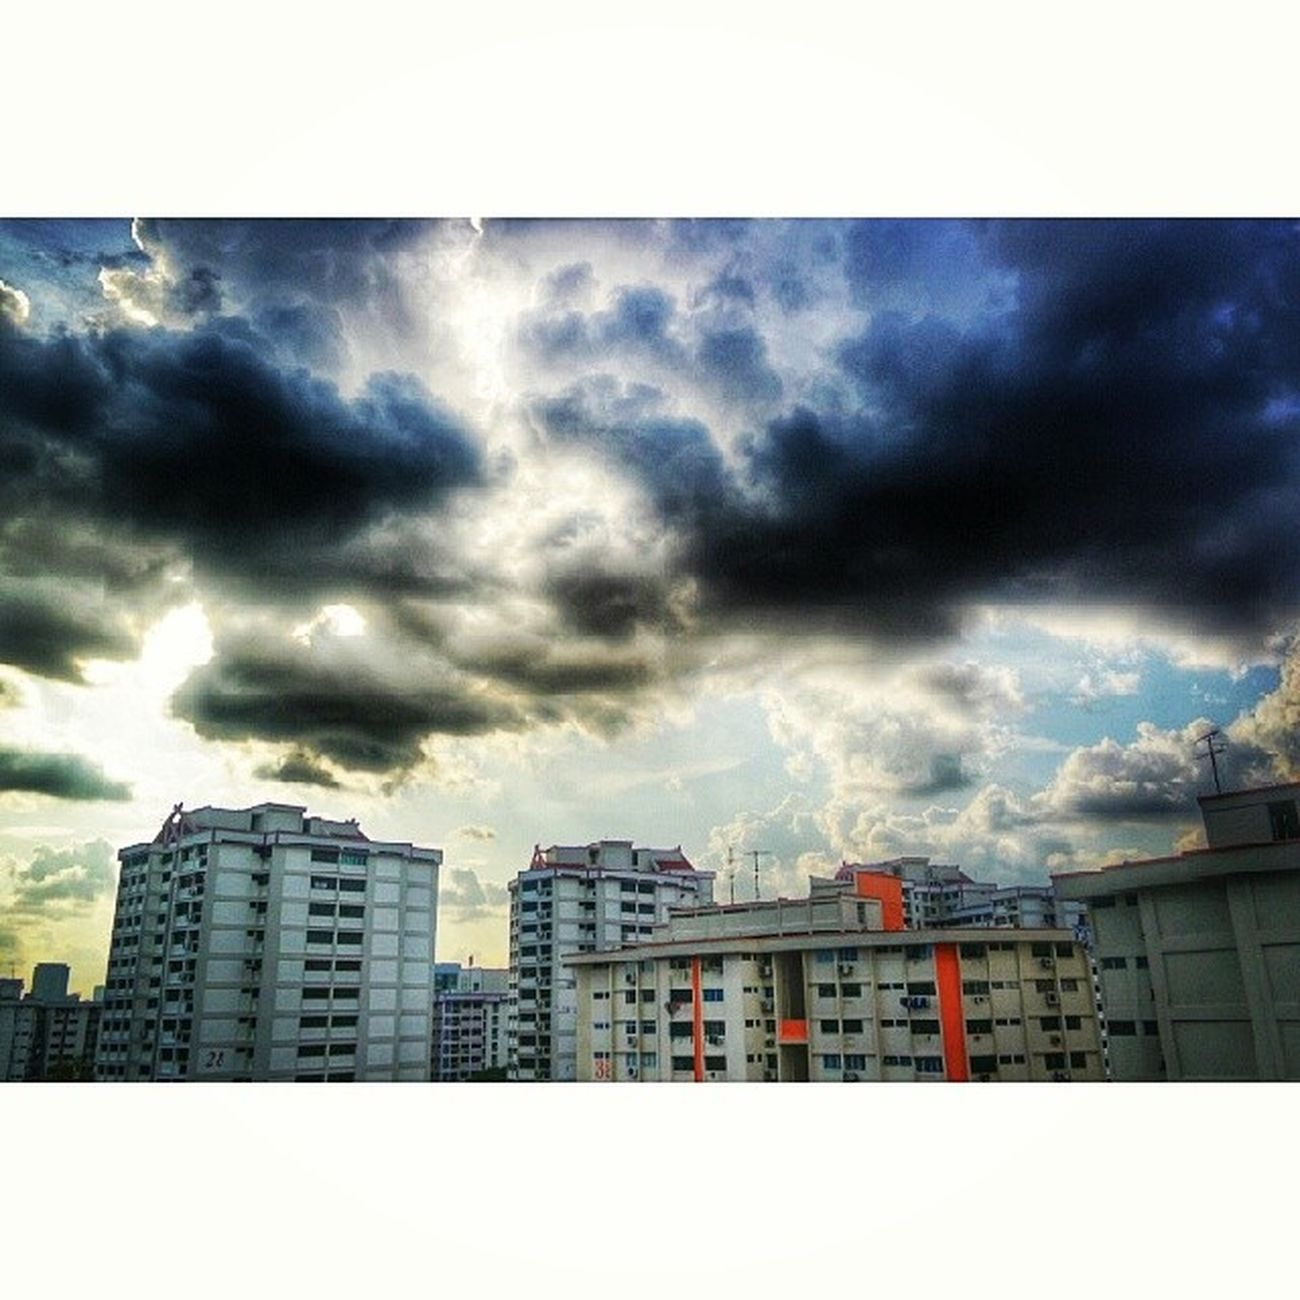 Massive rain clouds. Clouds Cloudofart Instagramhub Instadaily photooftheday Igerssg igrecommend